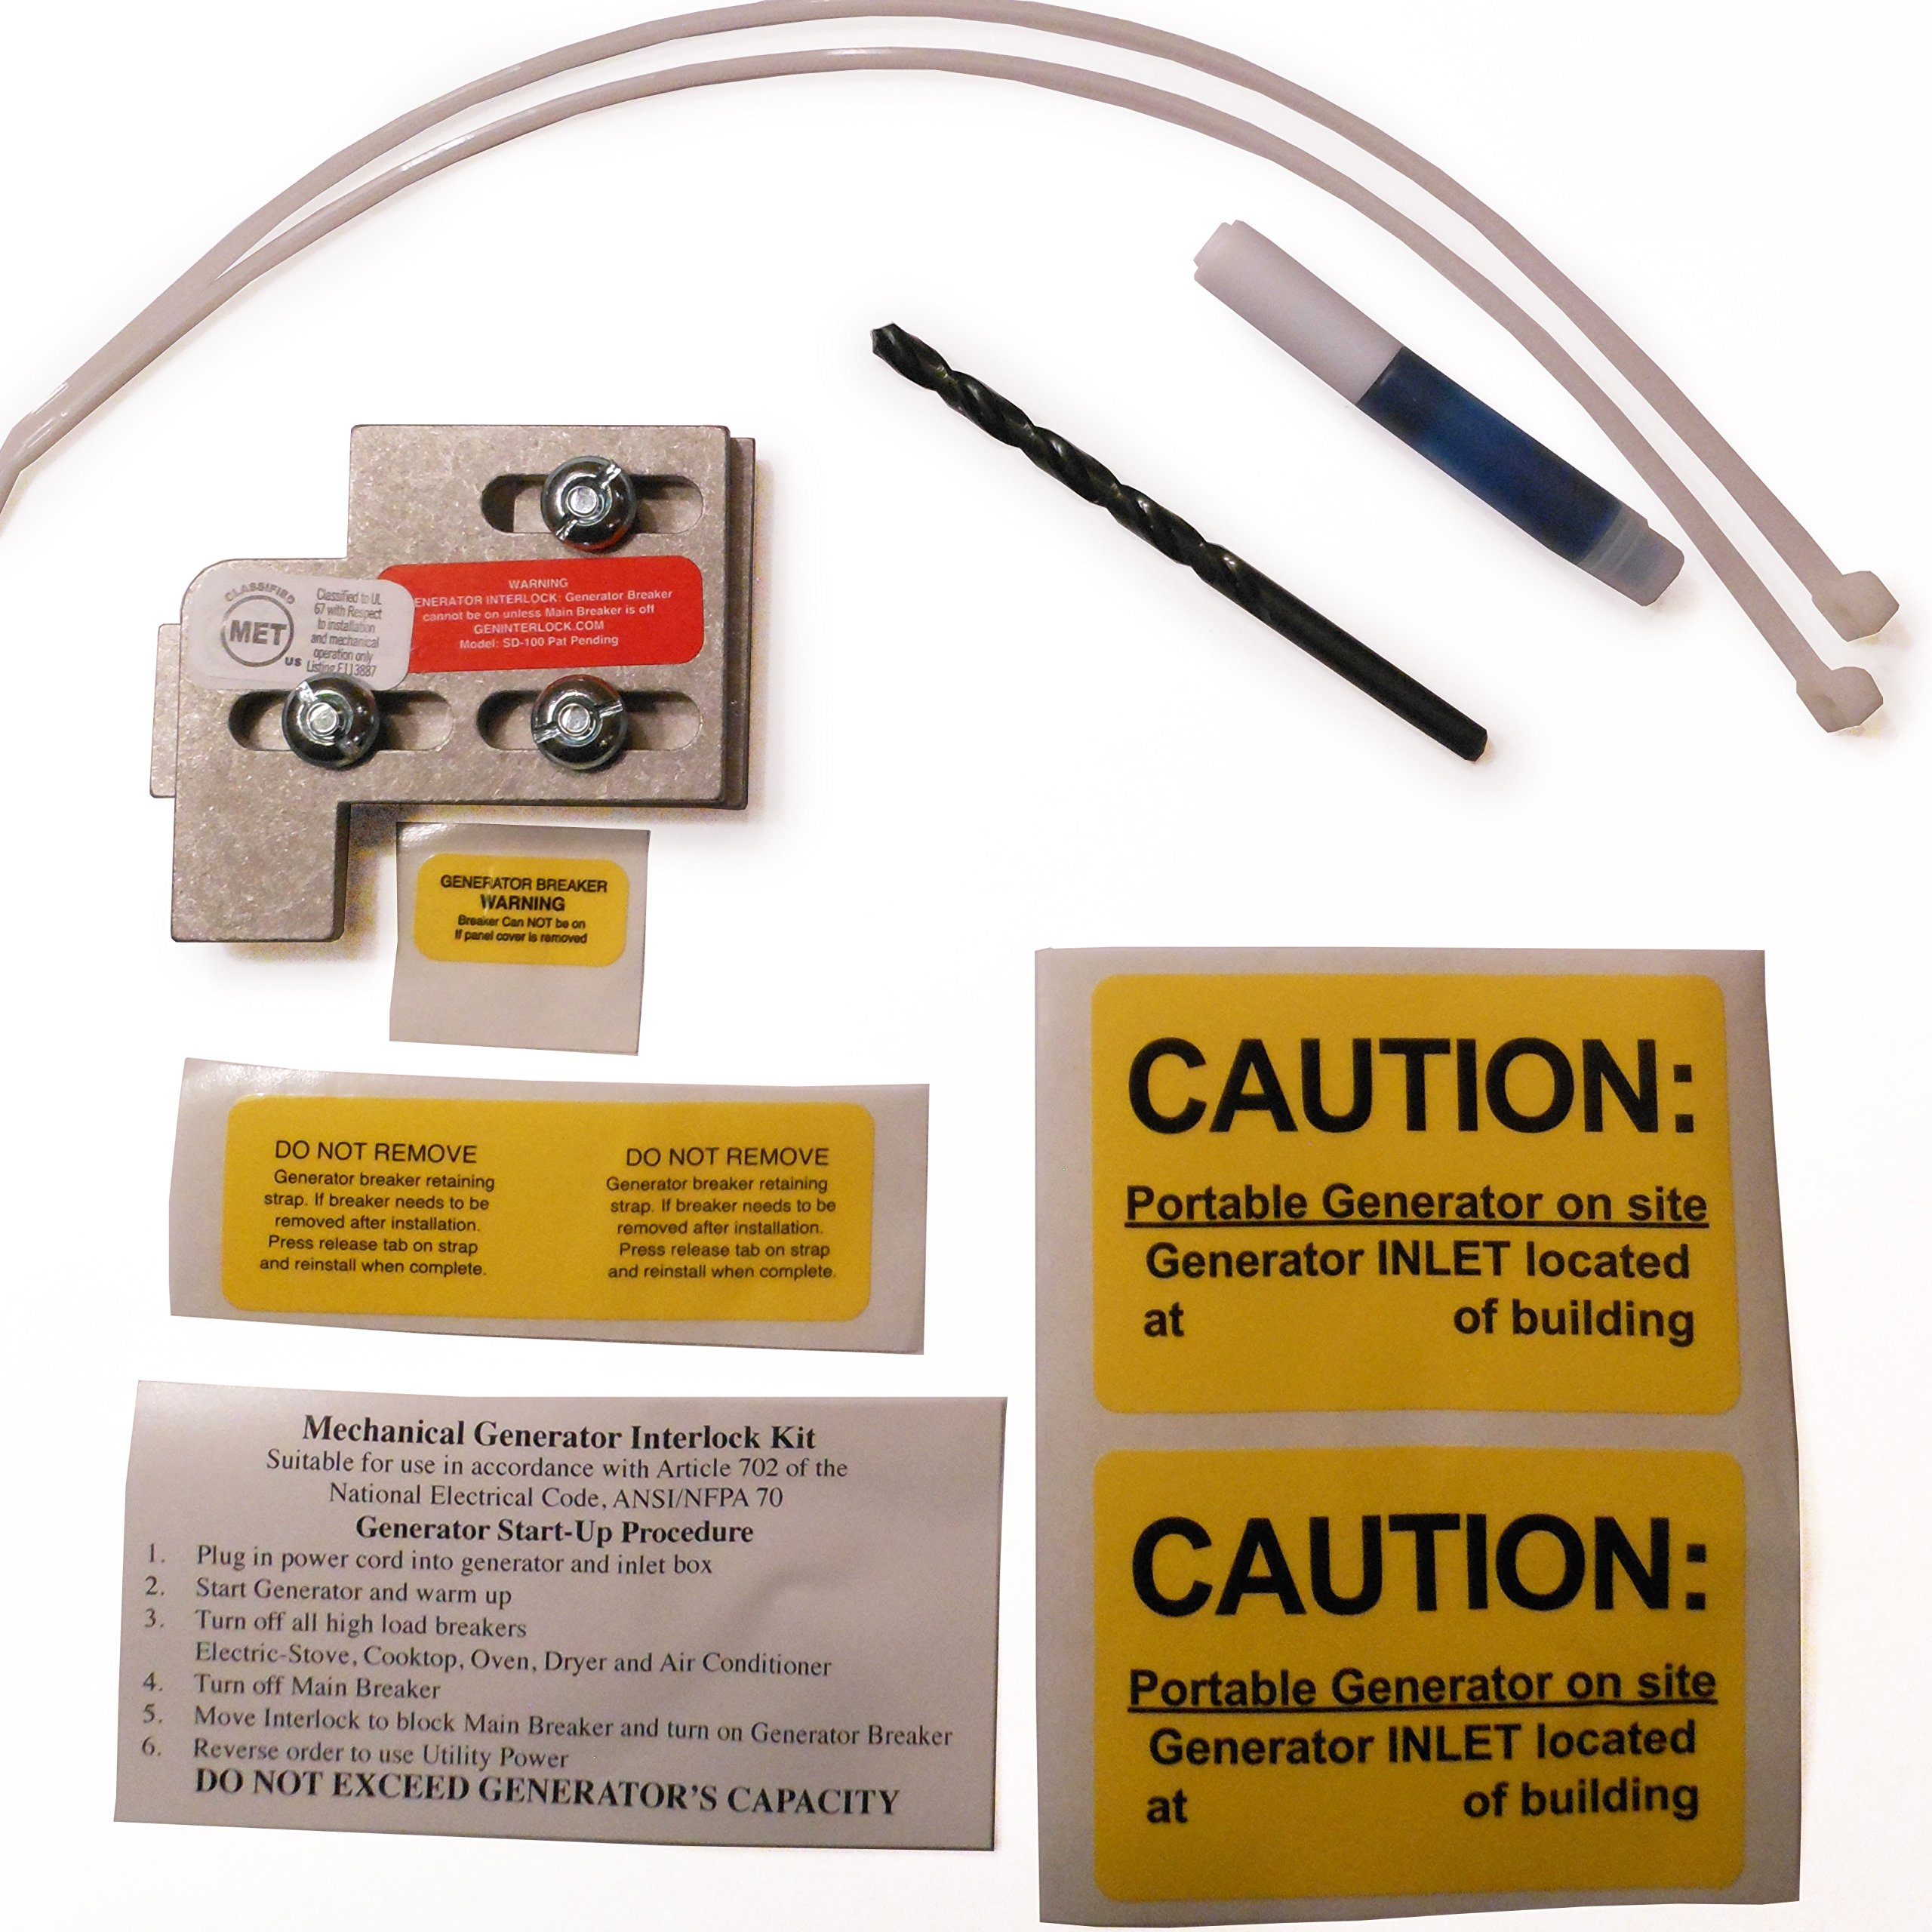 SD-100A Square D Generator Interlock Kit QO /& Homeline Indoor or outdoor 100 or 125 amp panels